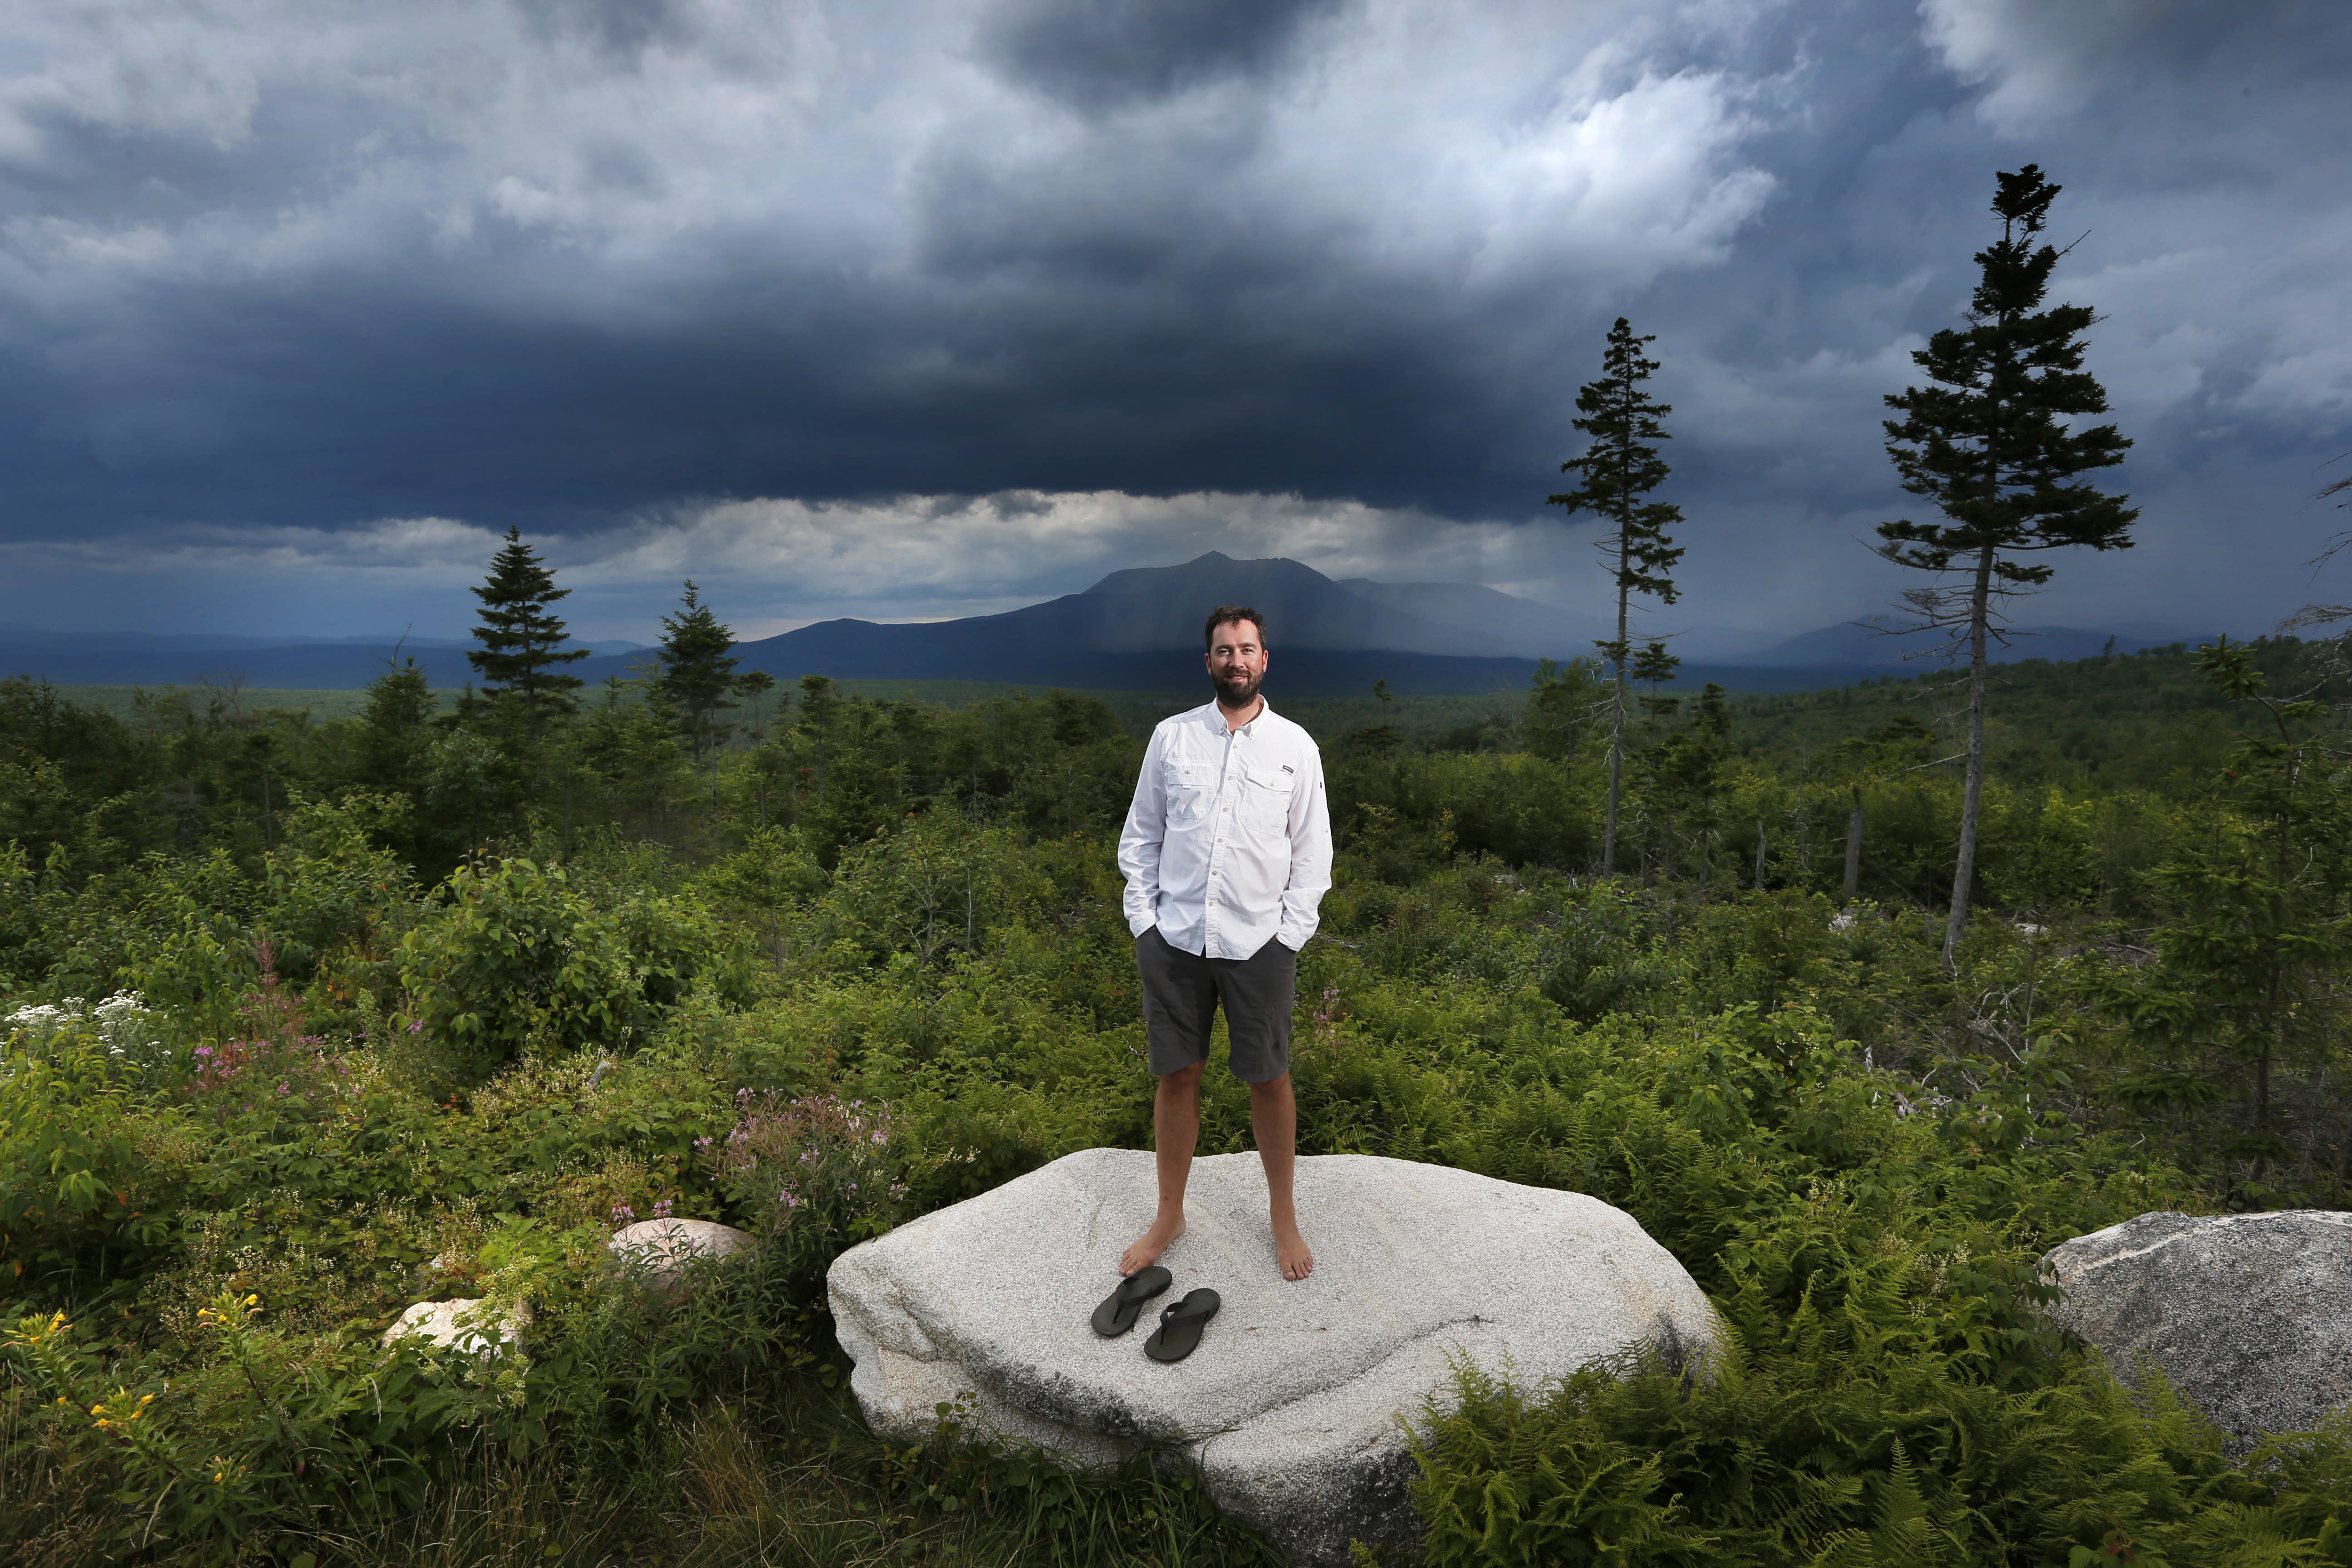 Maine land from Burt's Bees founder is new national monument